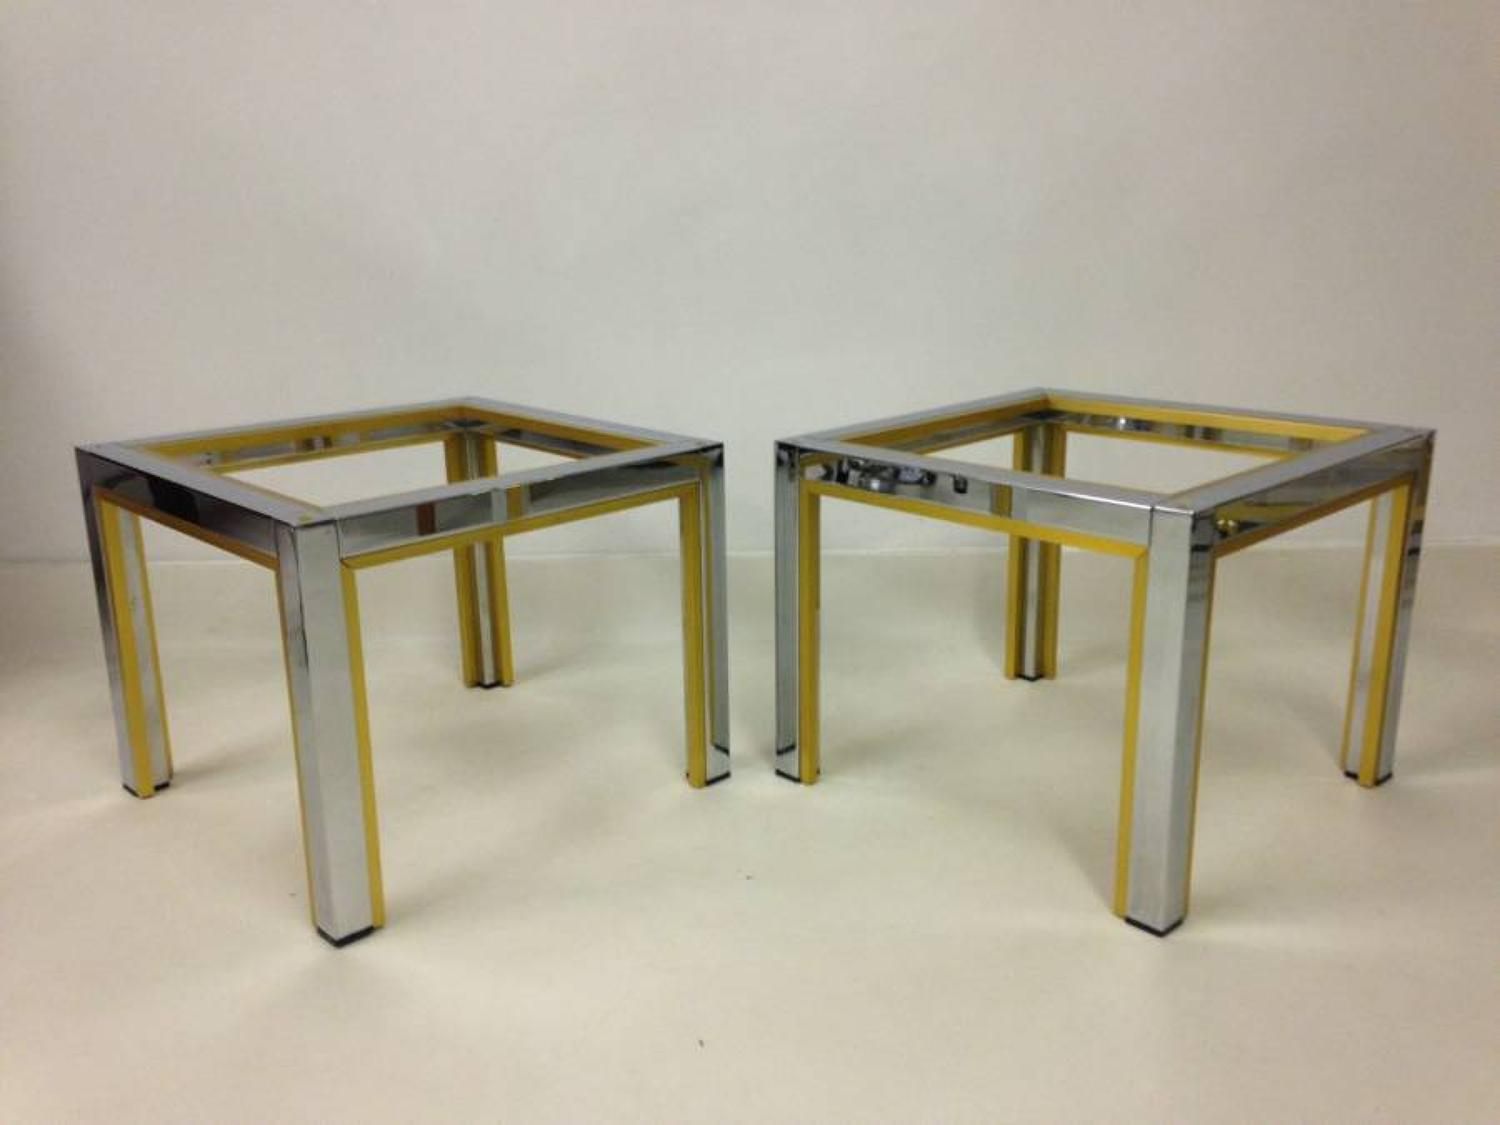 A pair of chrome and brass side tables